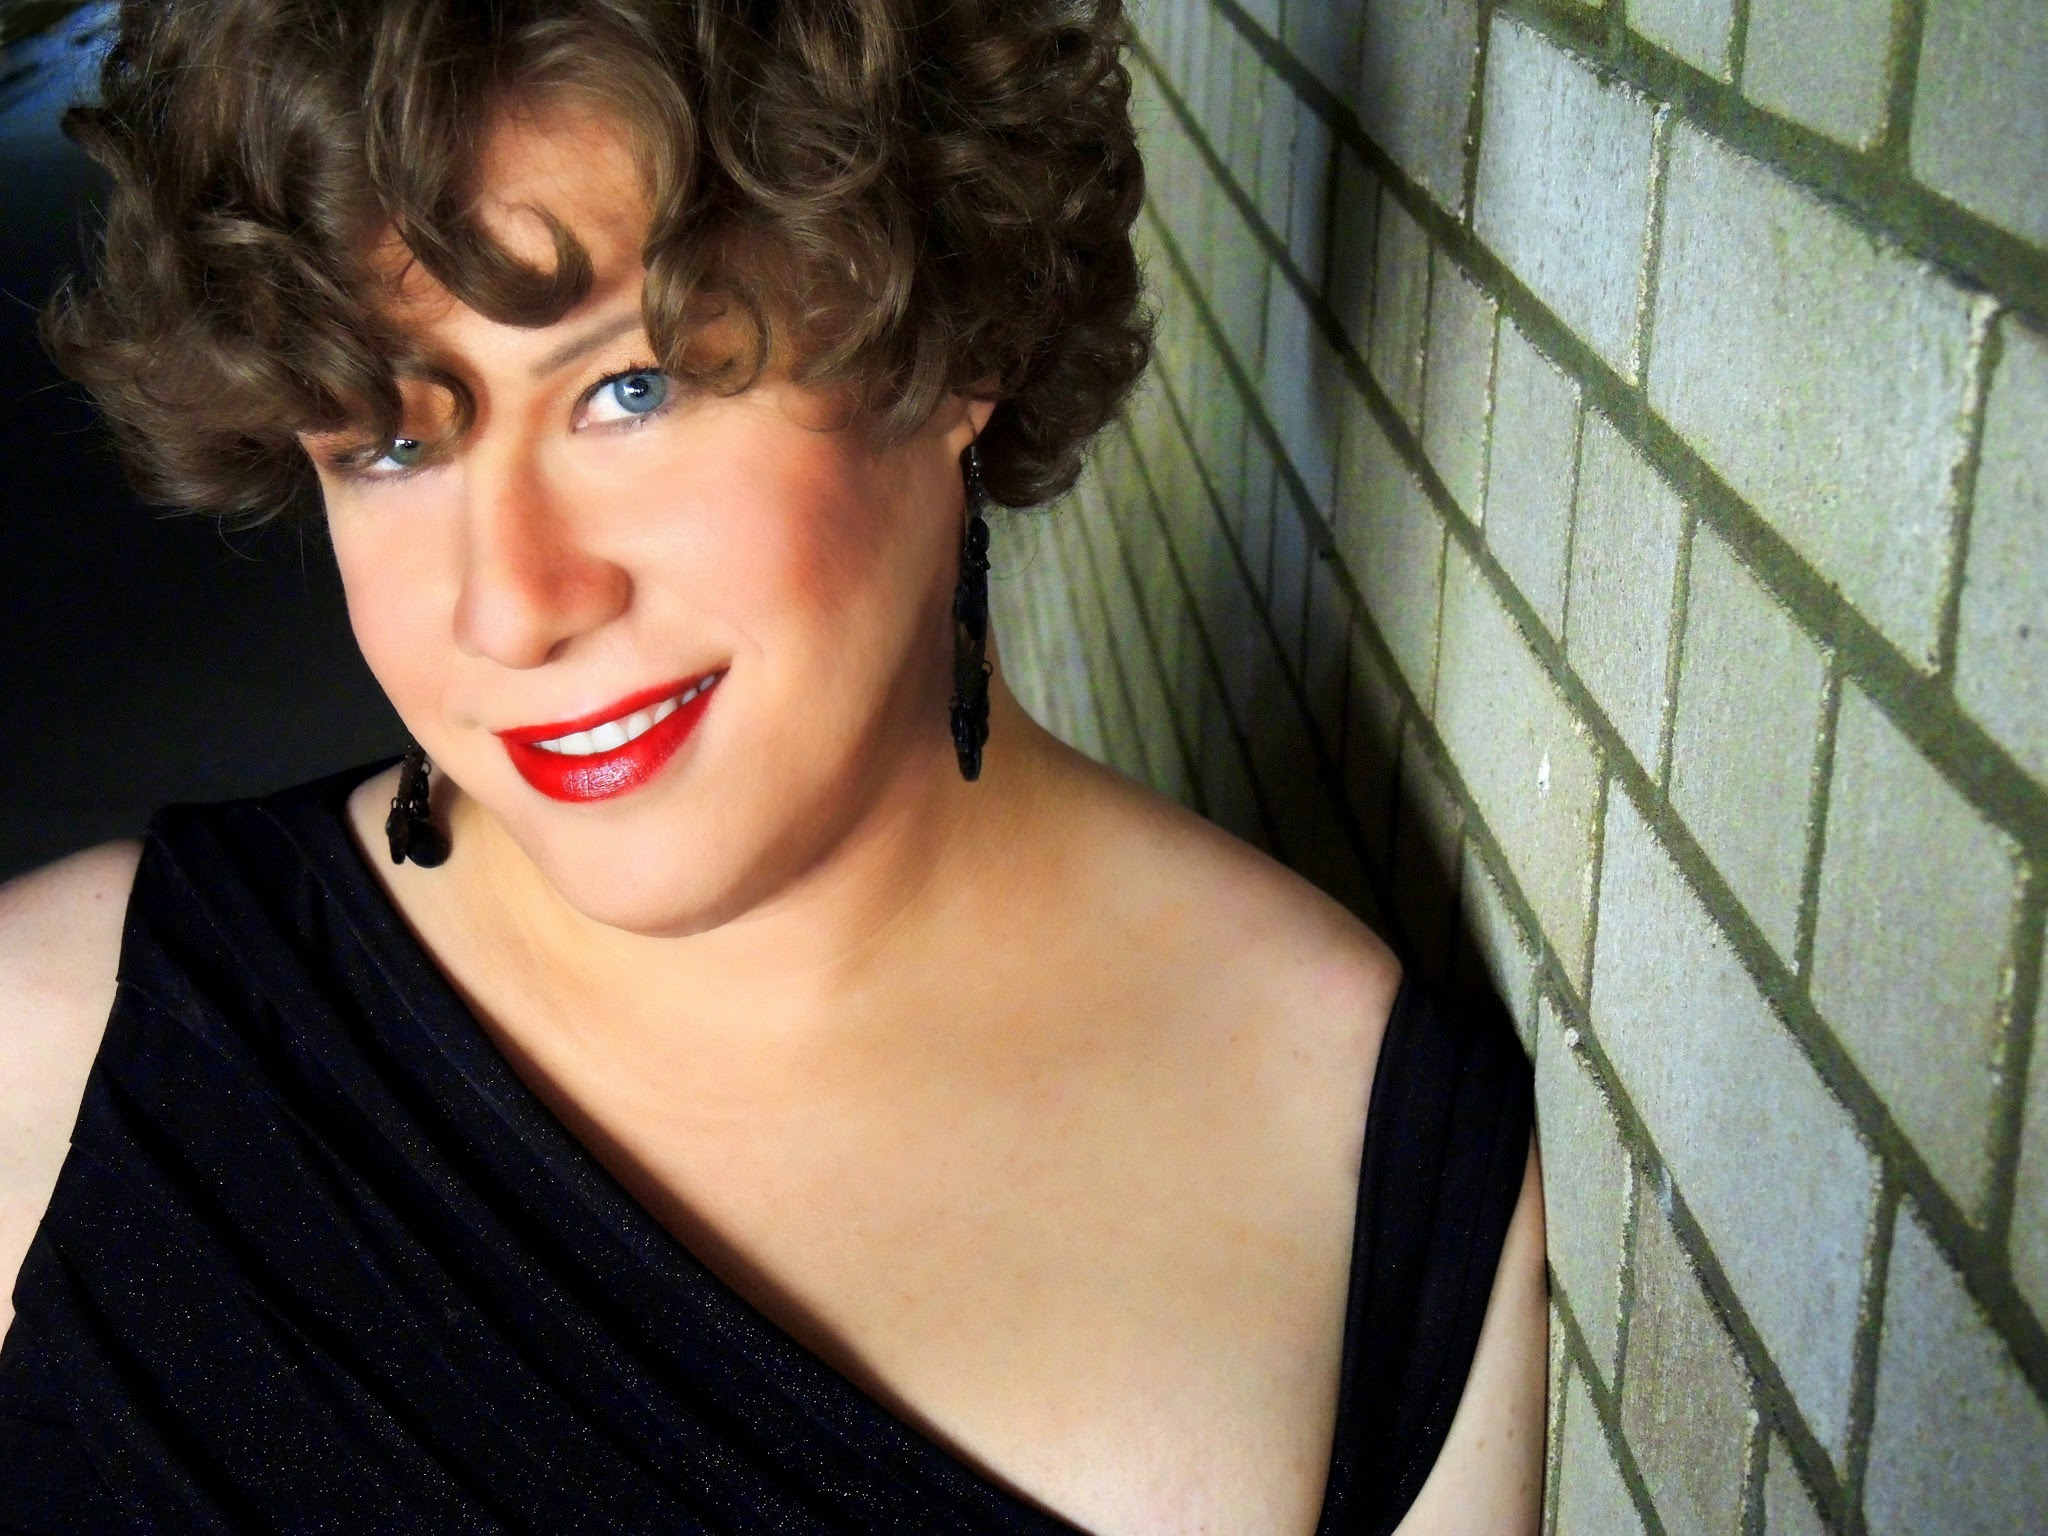 Breakthrough: First US opera role for a trans woman